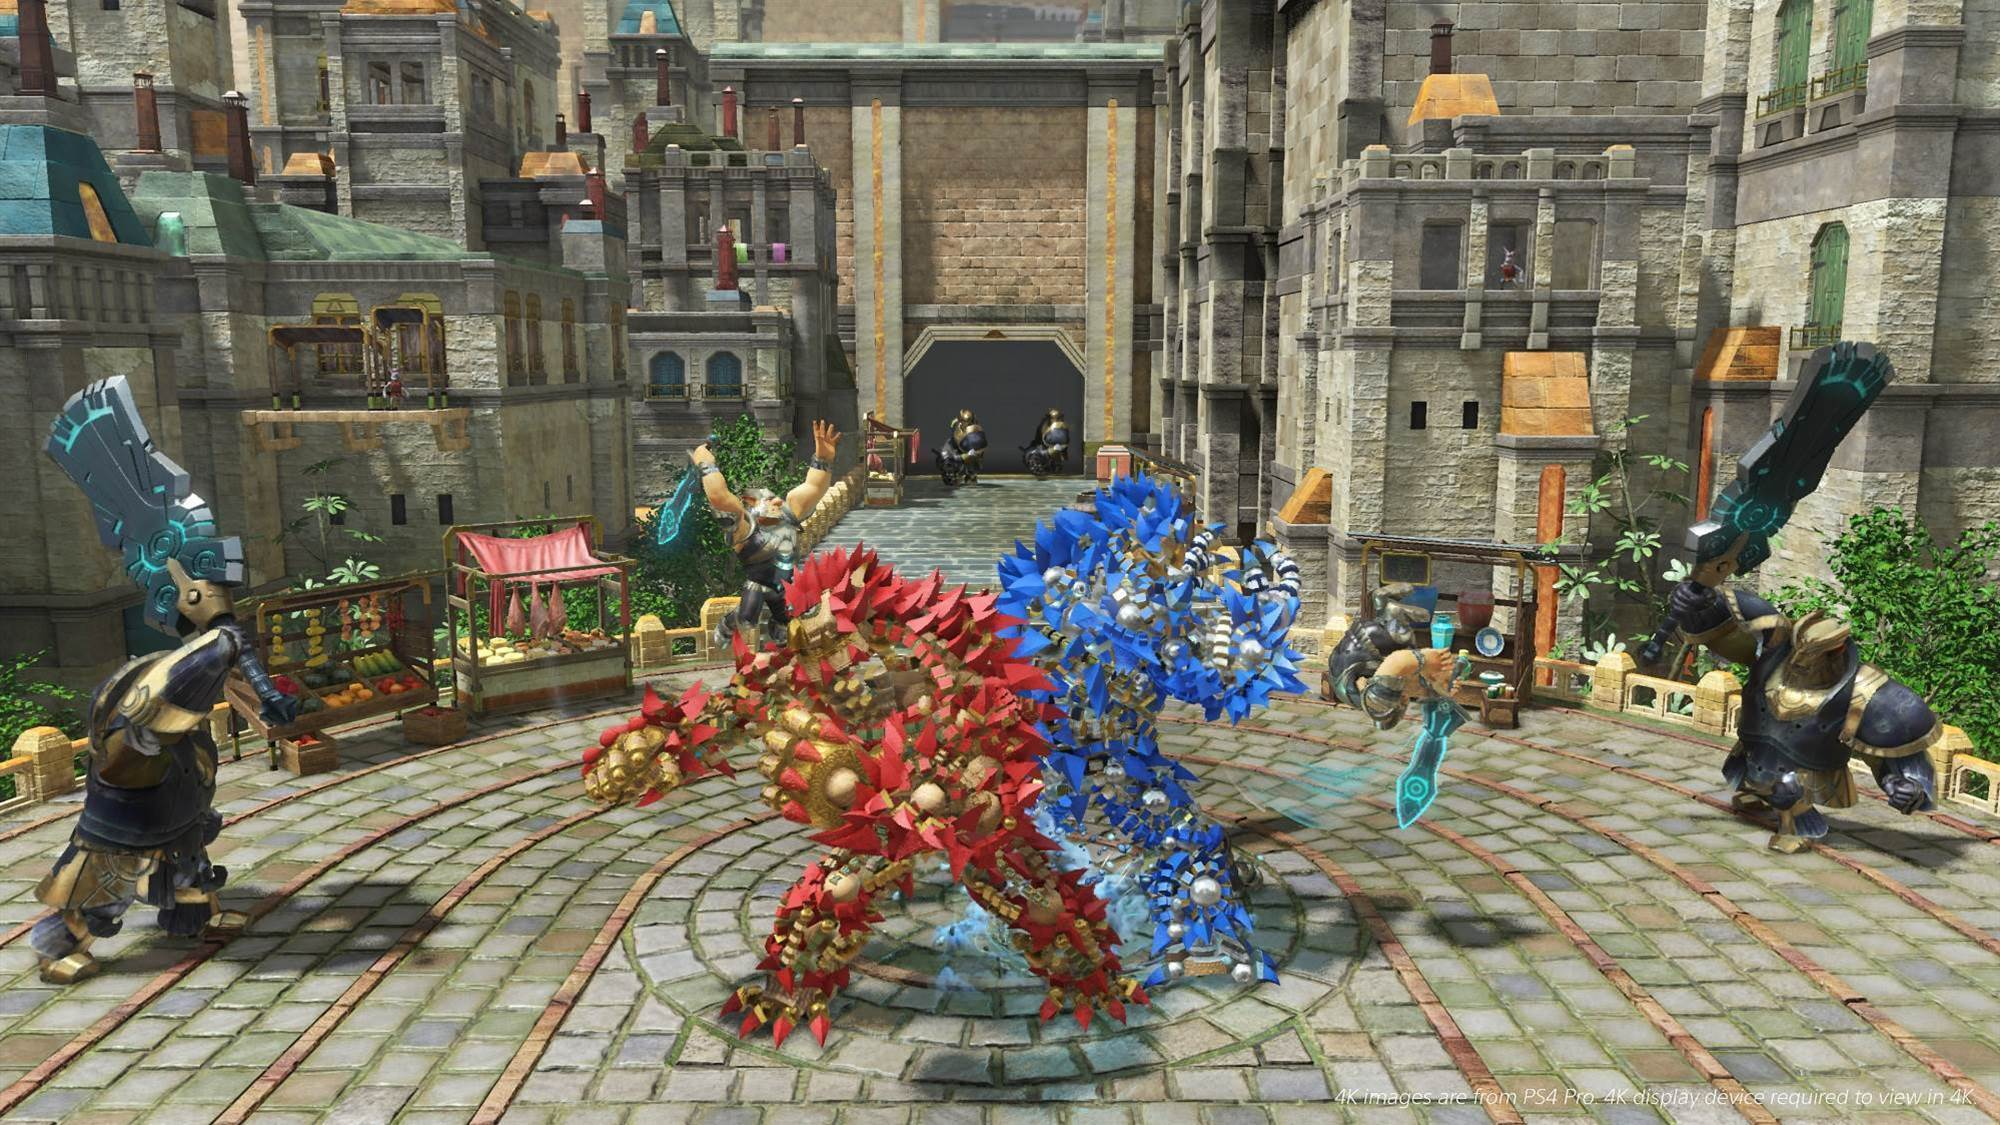 Knack 2 was free on the Au PlayStation Store earlier